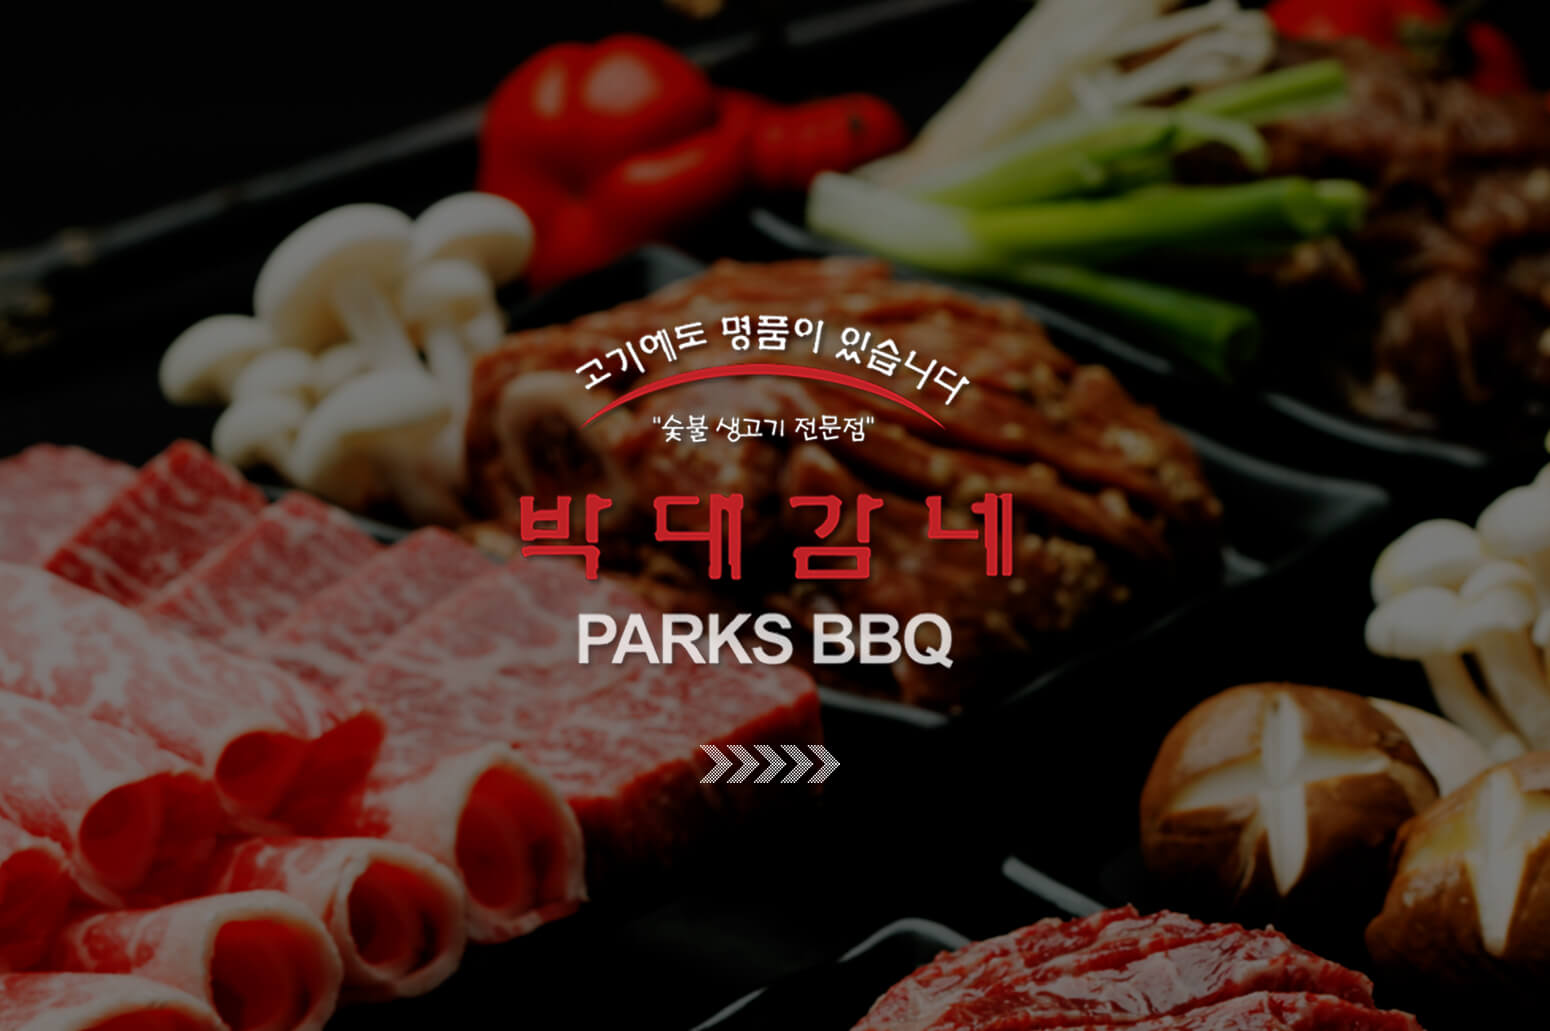 Parks BBQ Meat Image with Logo